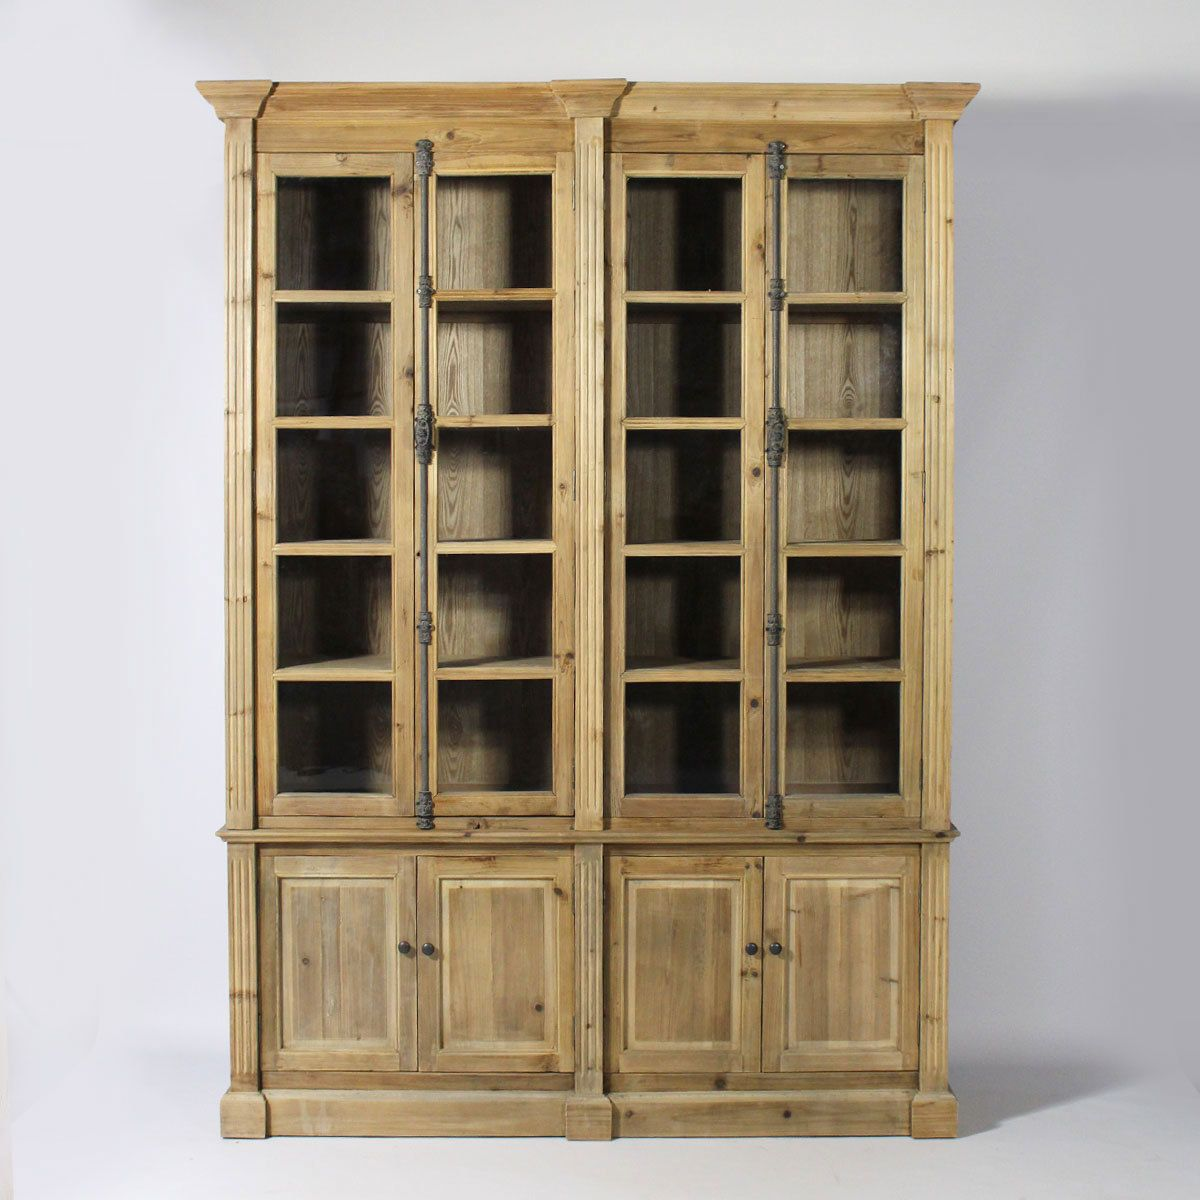 meuble biblioth que en bois recycl biblioth que vitr e authentique et pleine de charme. Black Bedroom Furniture Sets. Home Design Ideas